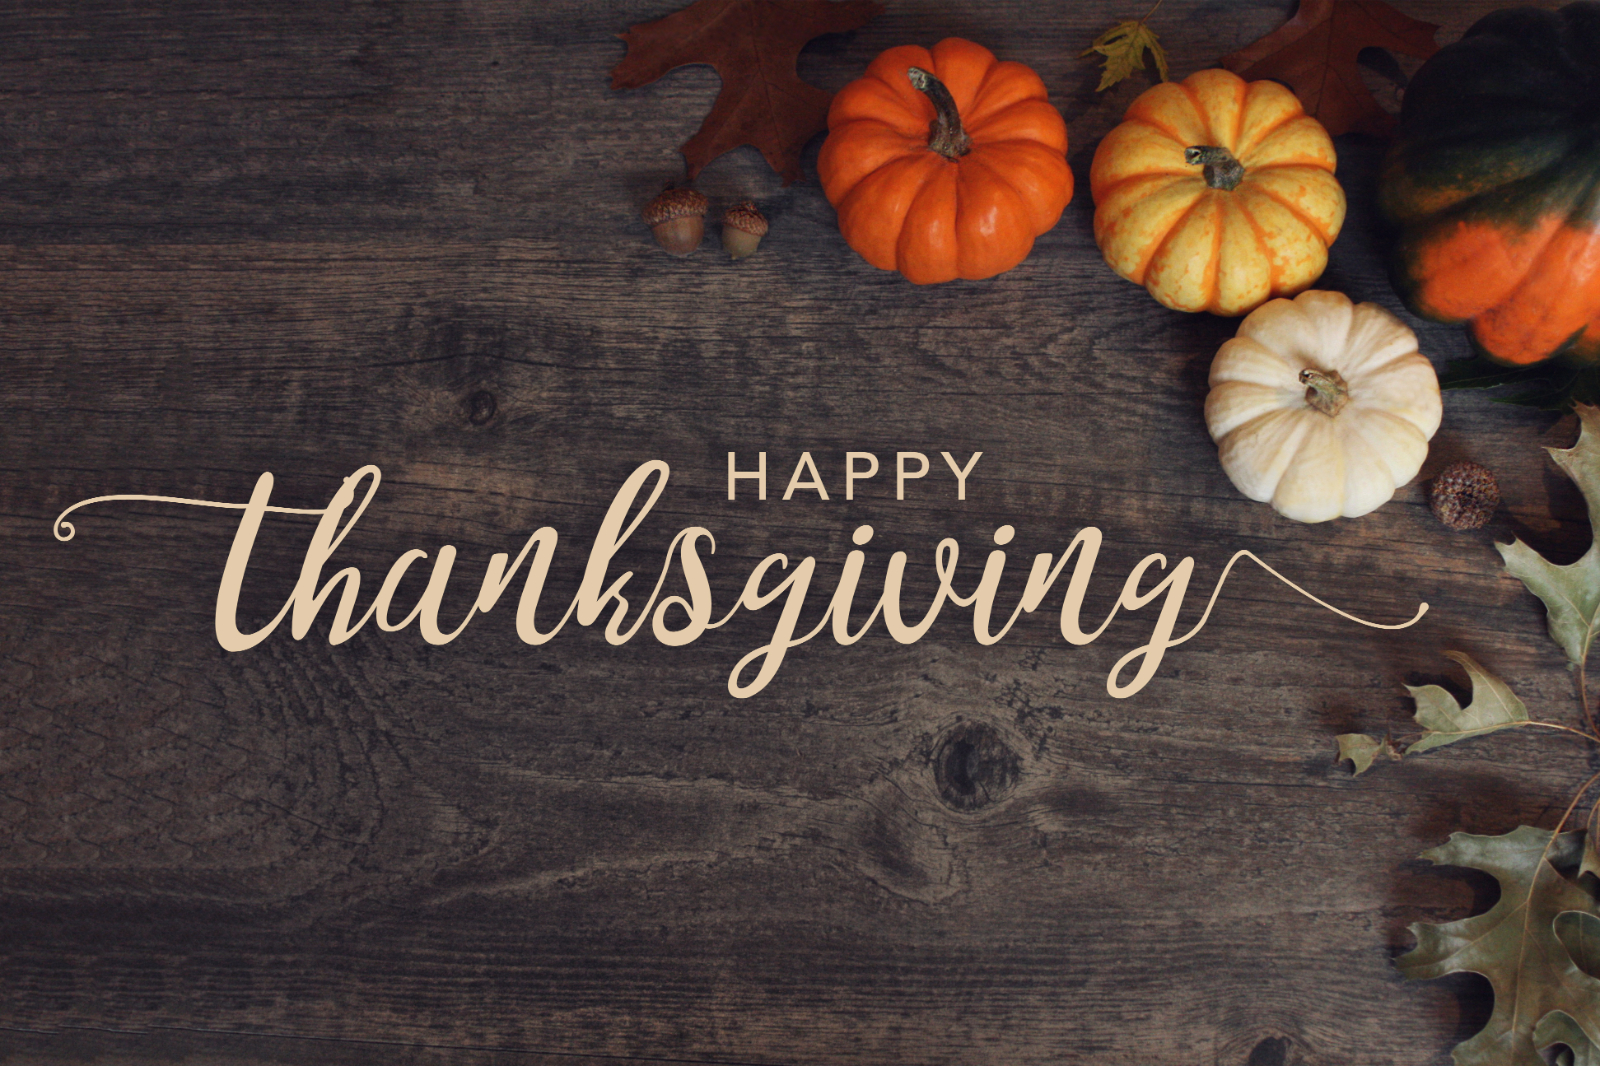 Wishing You All a Wonderful Thanksgiving!